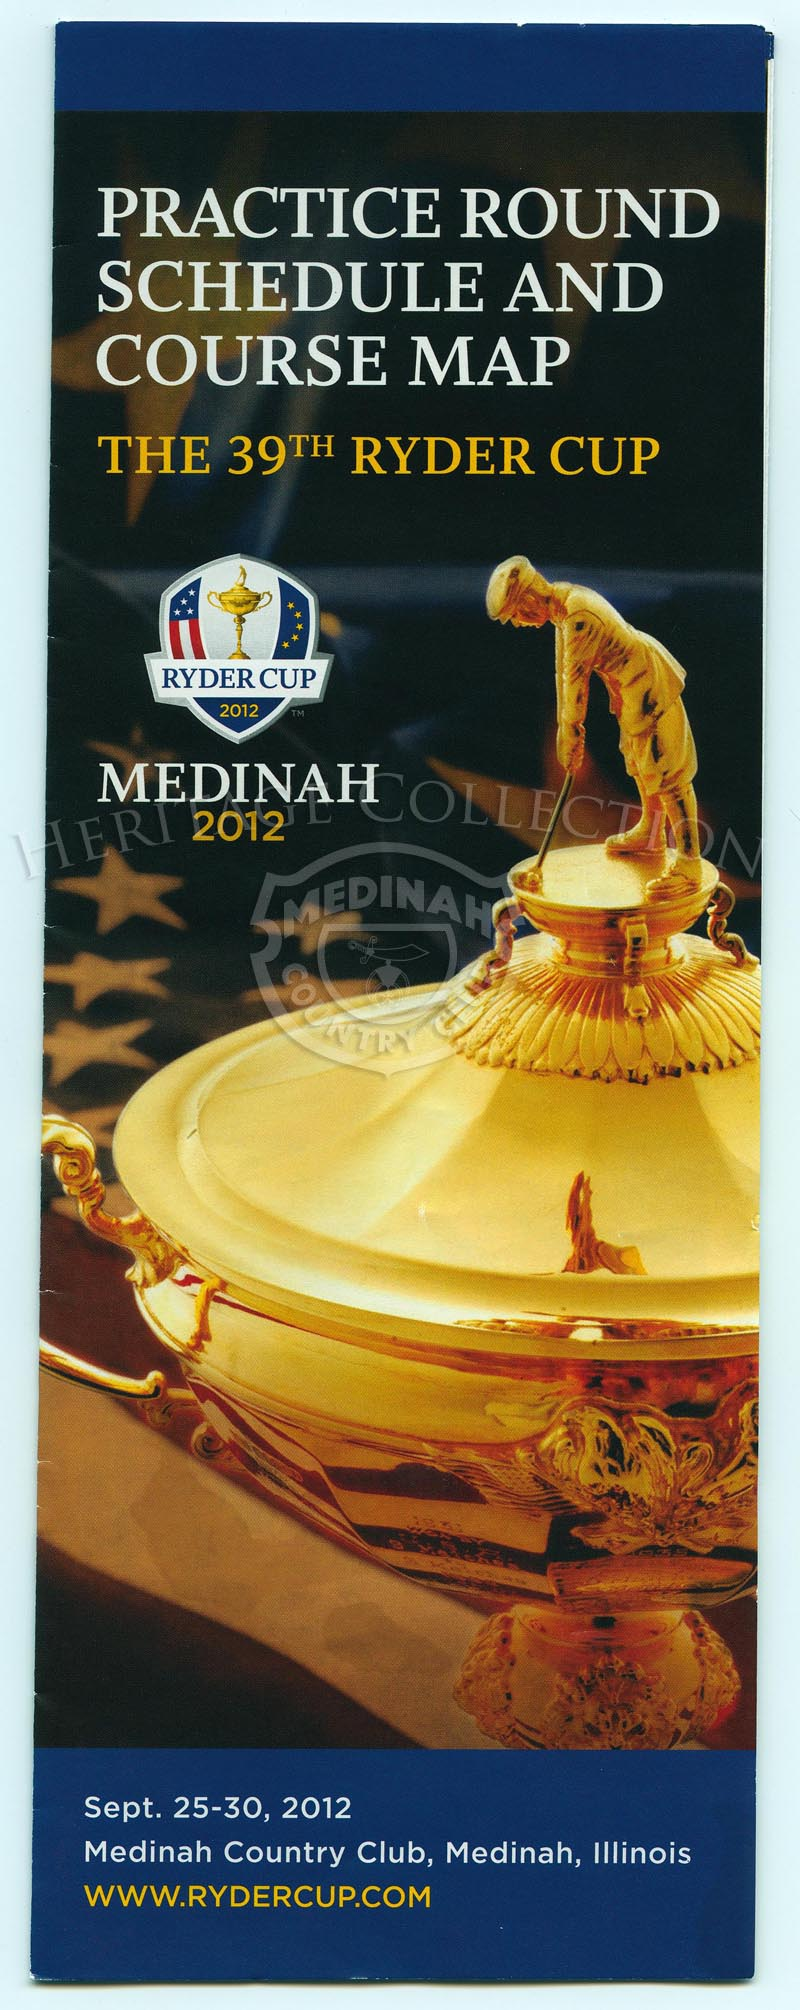 2012 Ryder Cup Practice Round Schedule and Course MapFold out map of property, 4÷ w x 11÷ h.